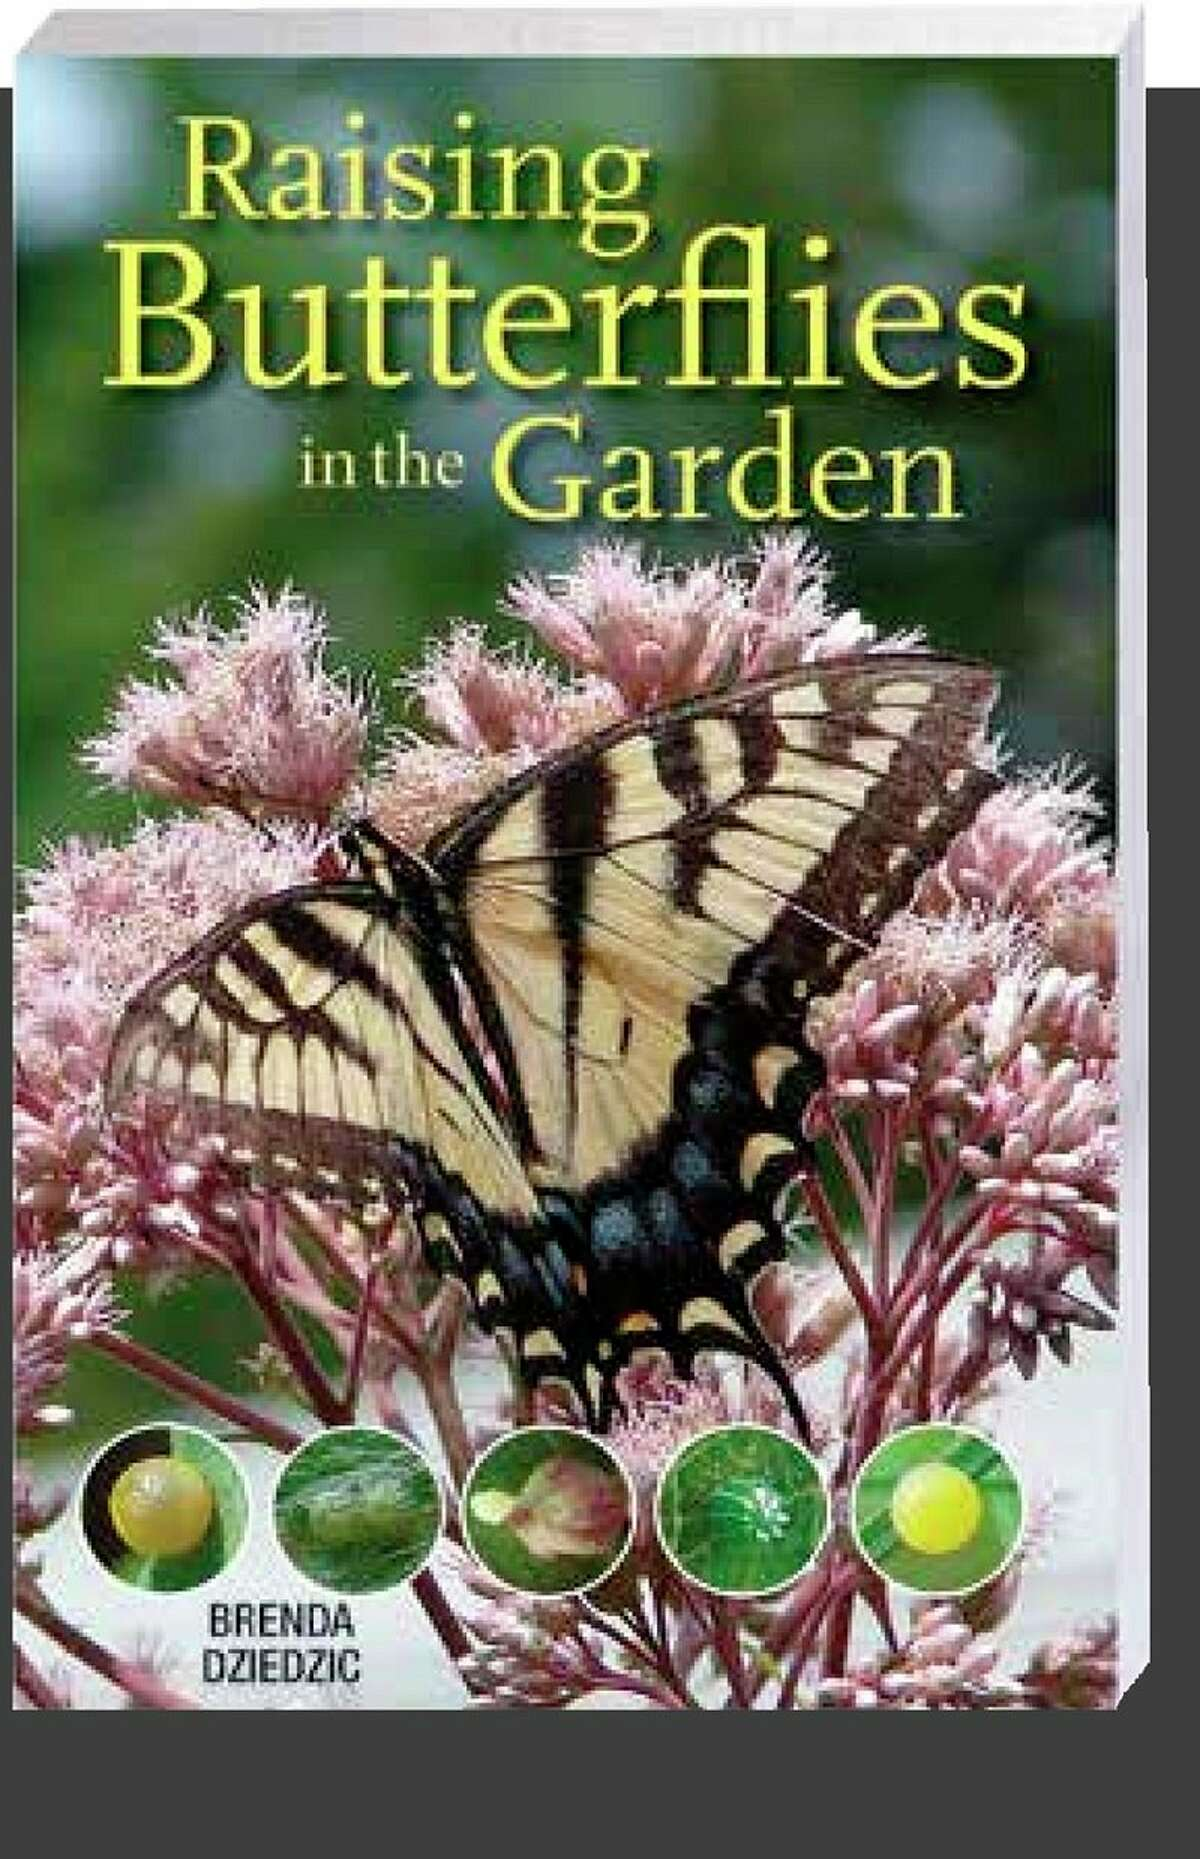 Brenda Dziedzic is the author of Raising Butterflies in the Garden and founder of